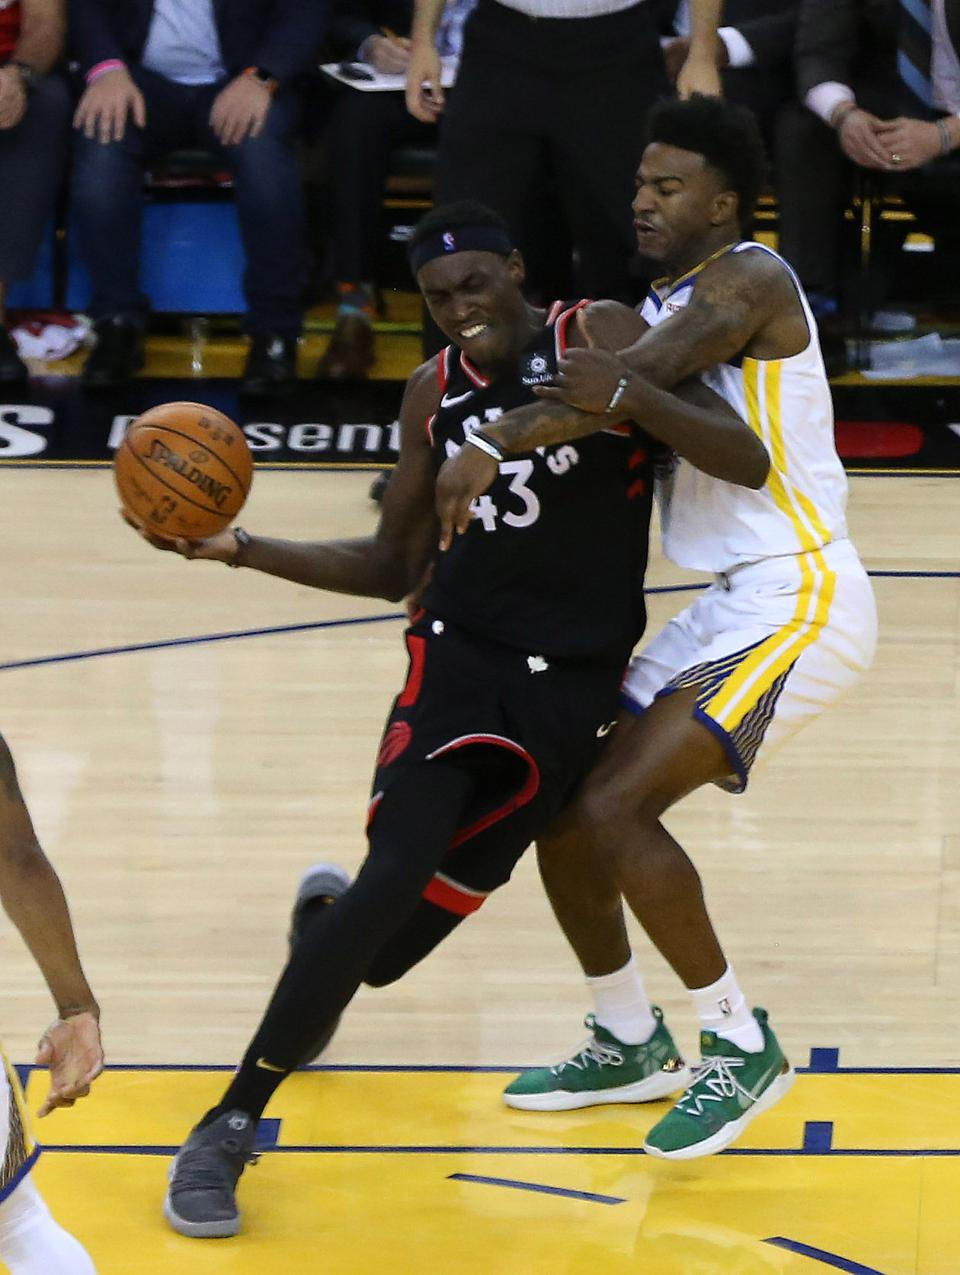 Toronto Raptors beat the Golden State Warriors in game three of the NBA Finals